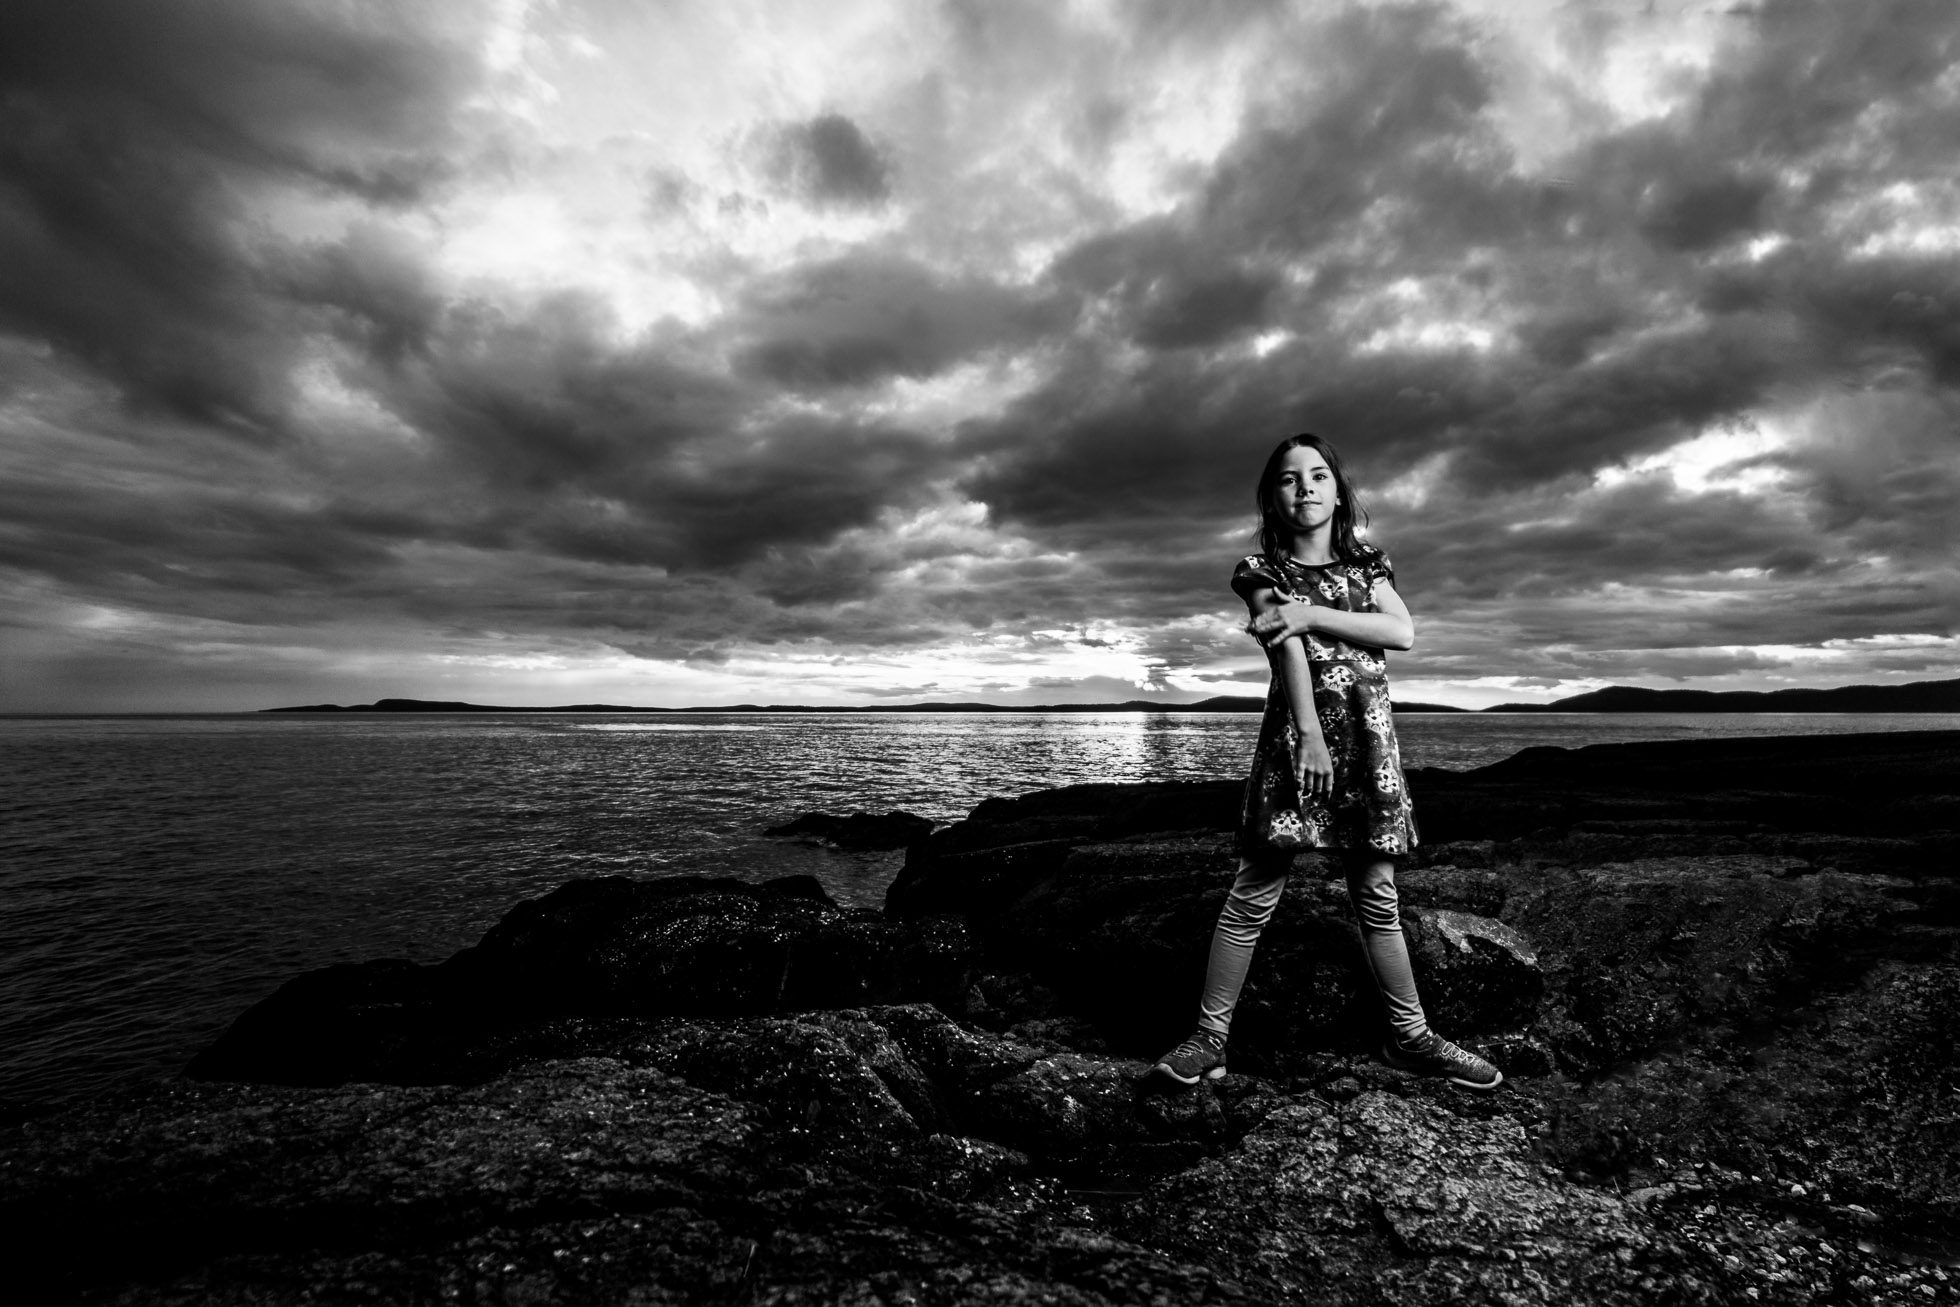 Girl on beach with storm clouds